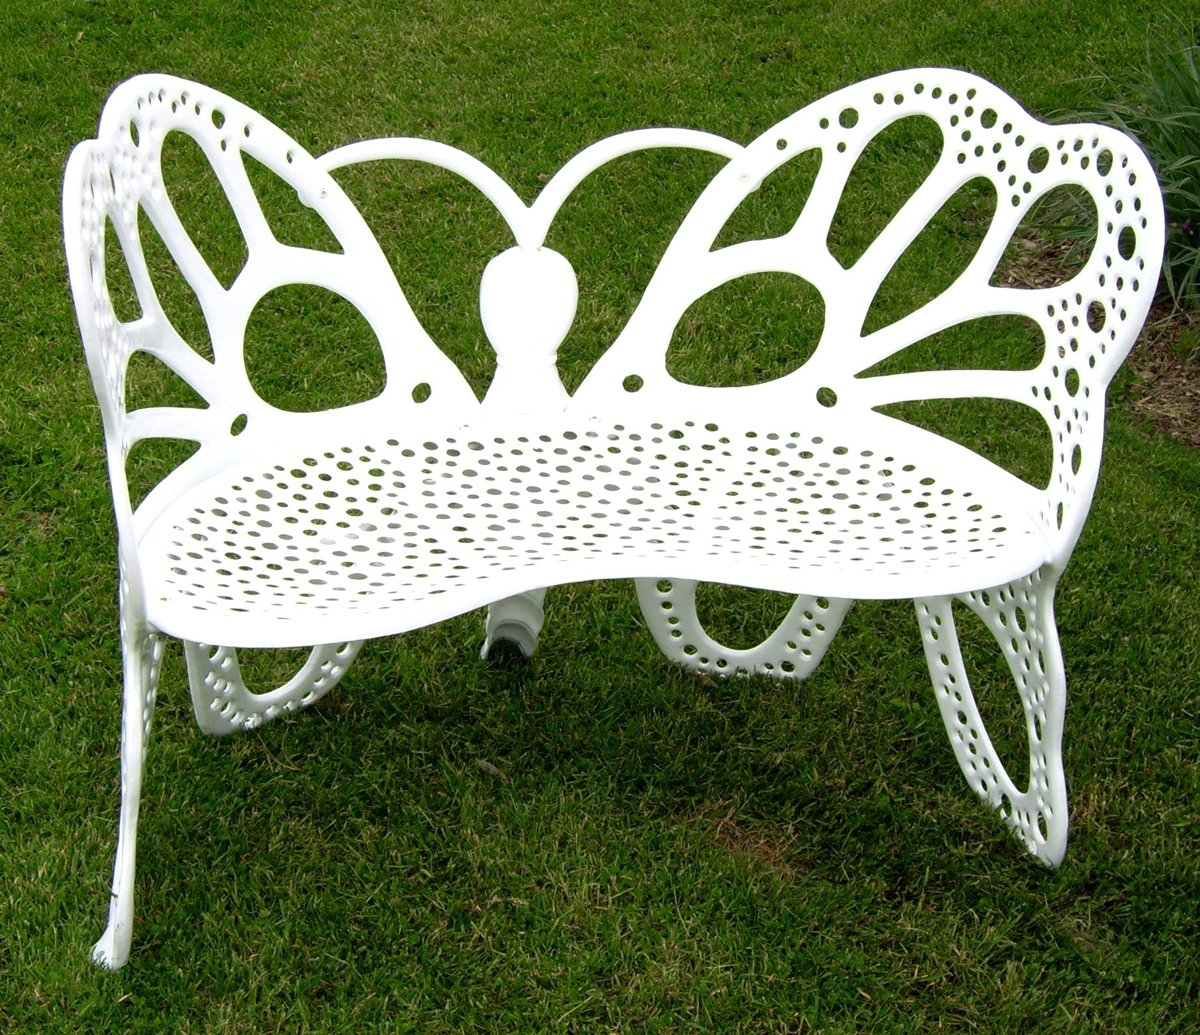 Butterfly metal chair - Amazon Com Flower House Fhbfb06w Butterfly Bench White Outdoor Benches Patio Lawn Garden